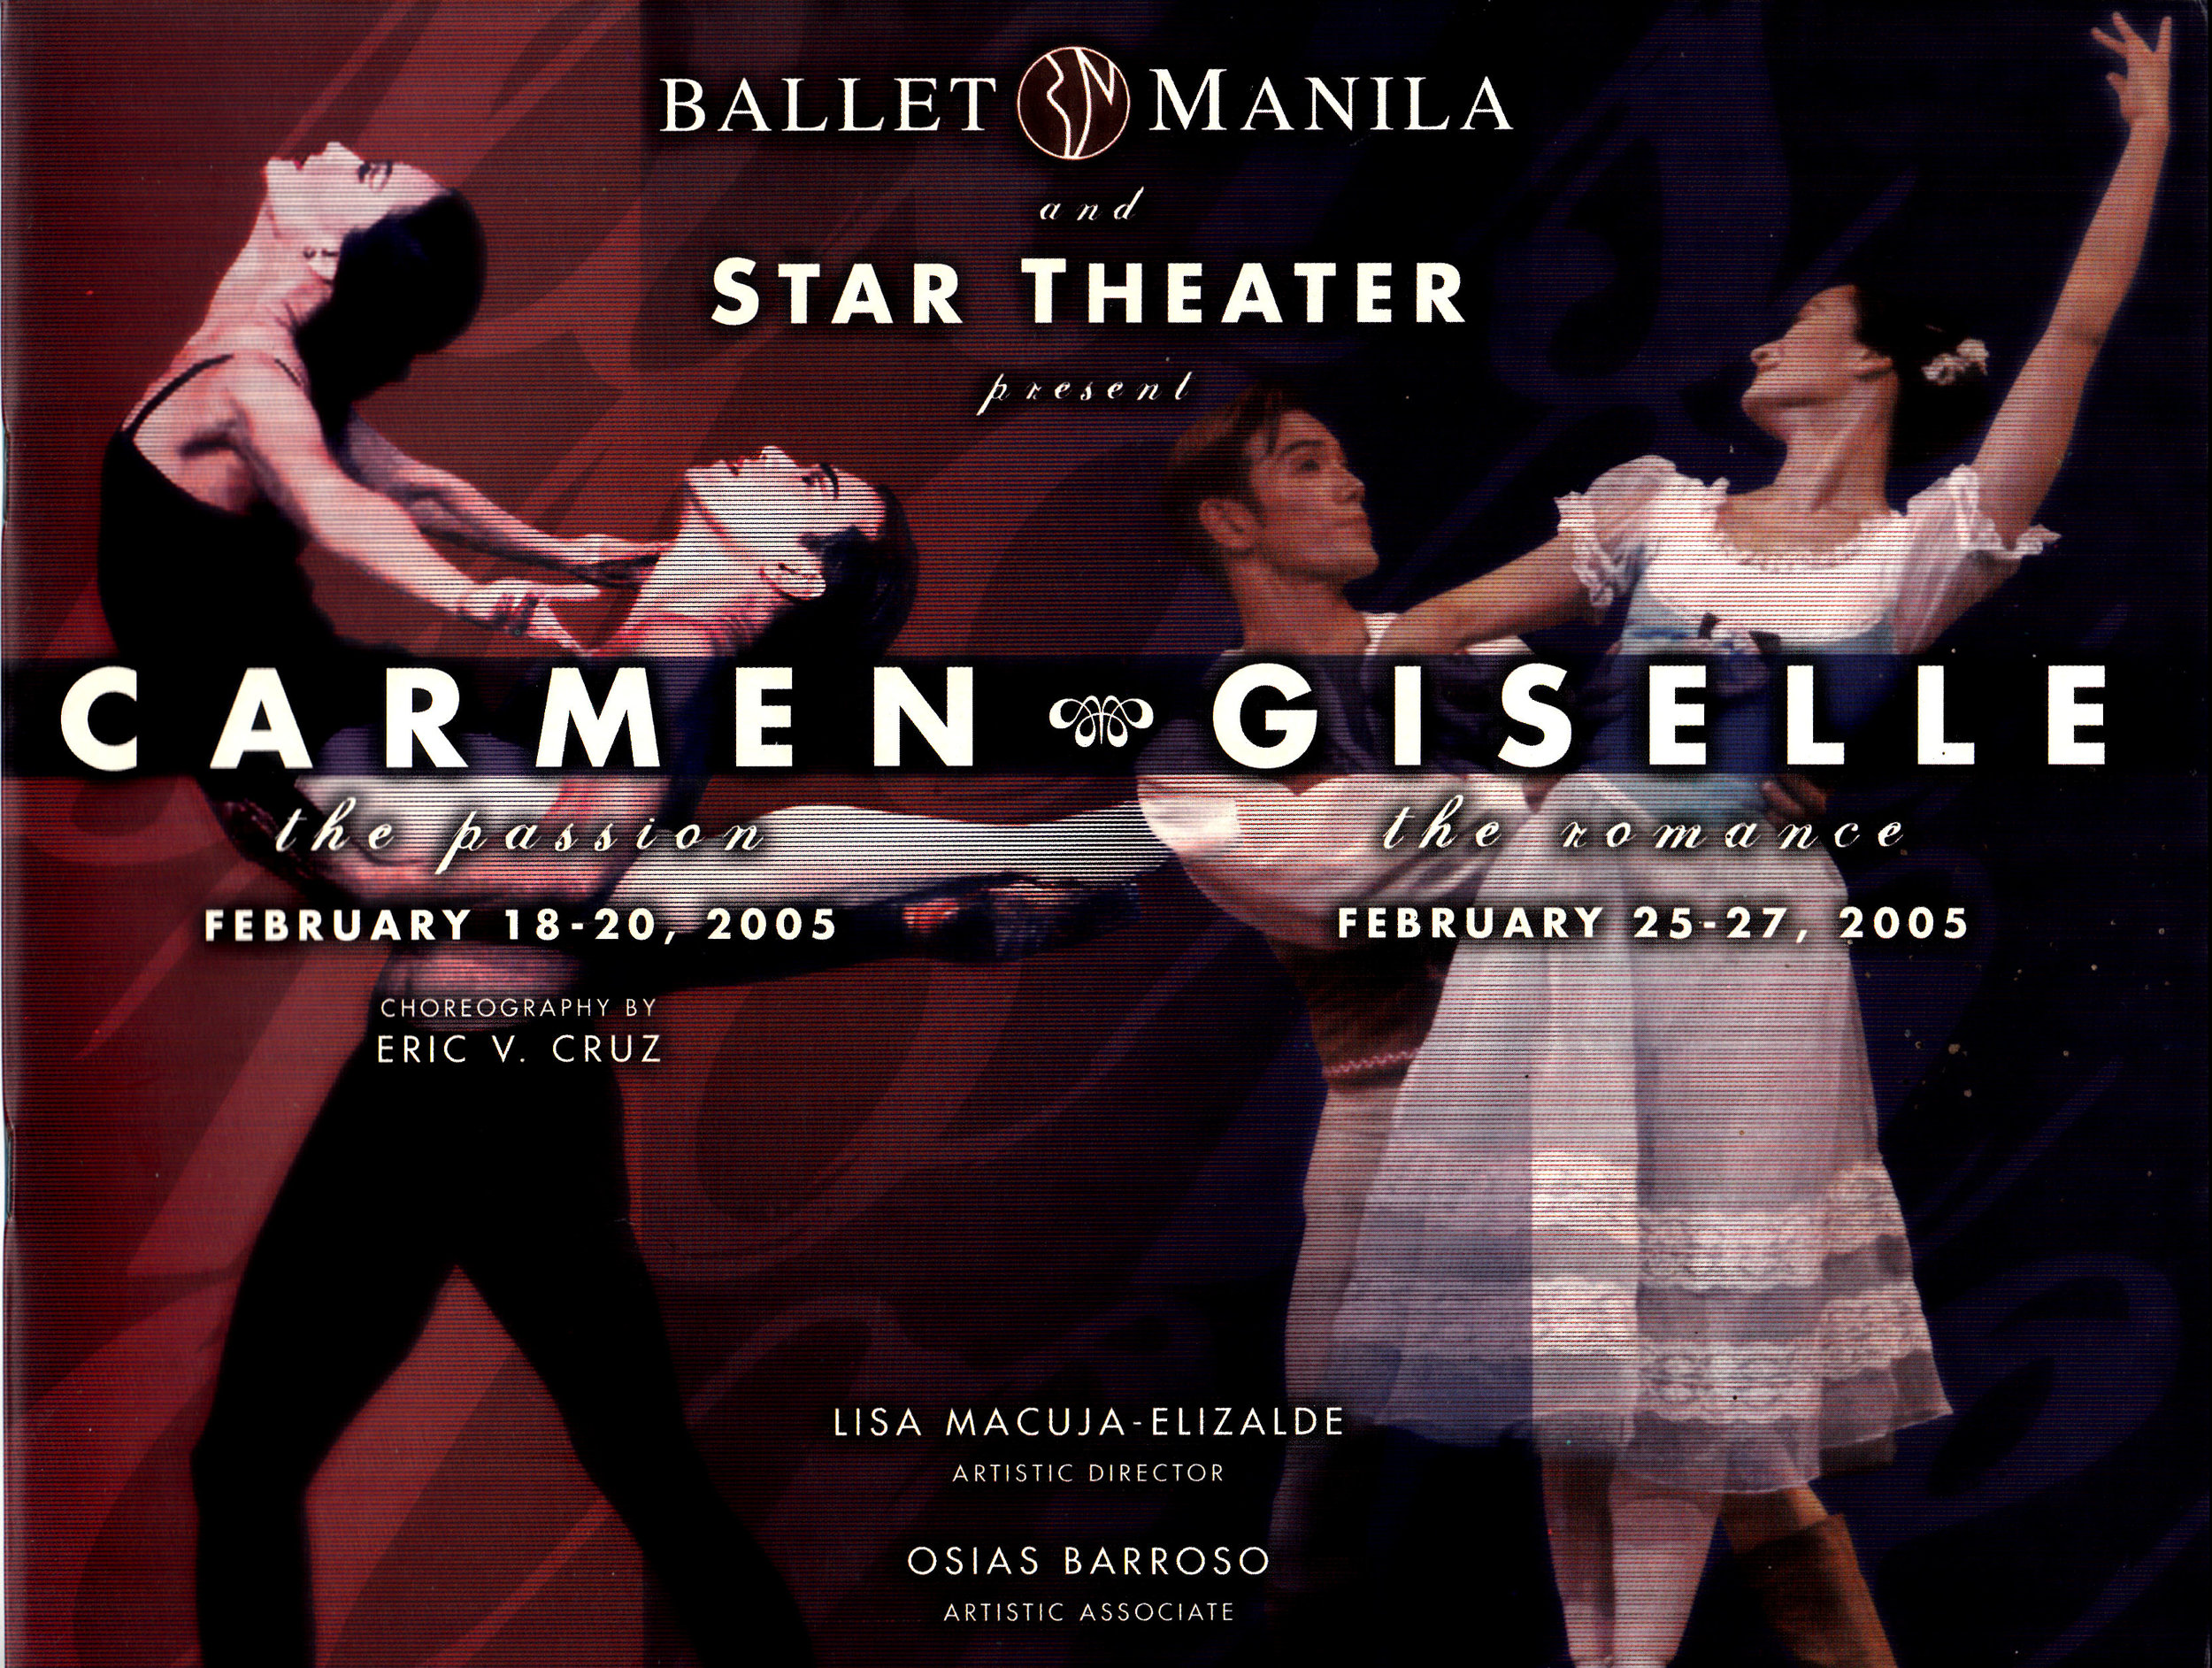 Souvenir program of Ballet Manila's groundbreaking double feature to close the company's 10th performance season. From the Ballet Manila Archives collection